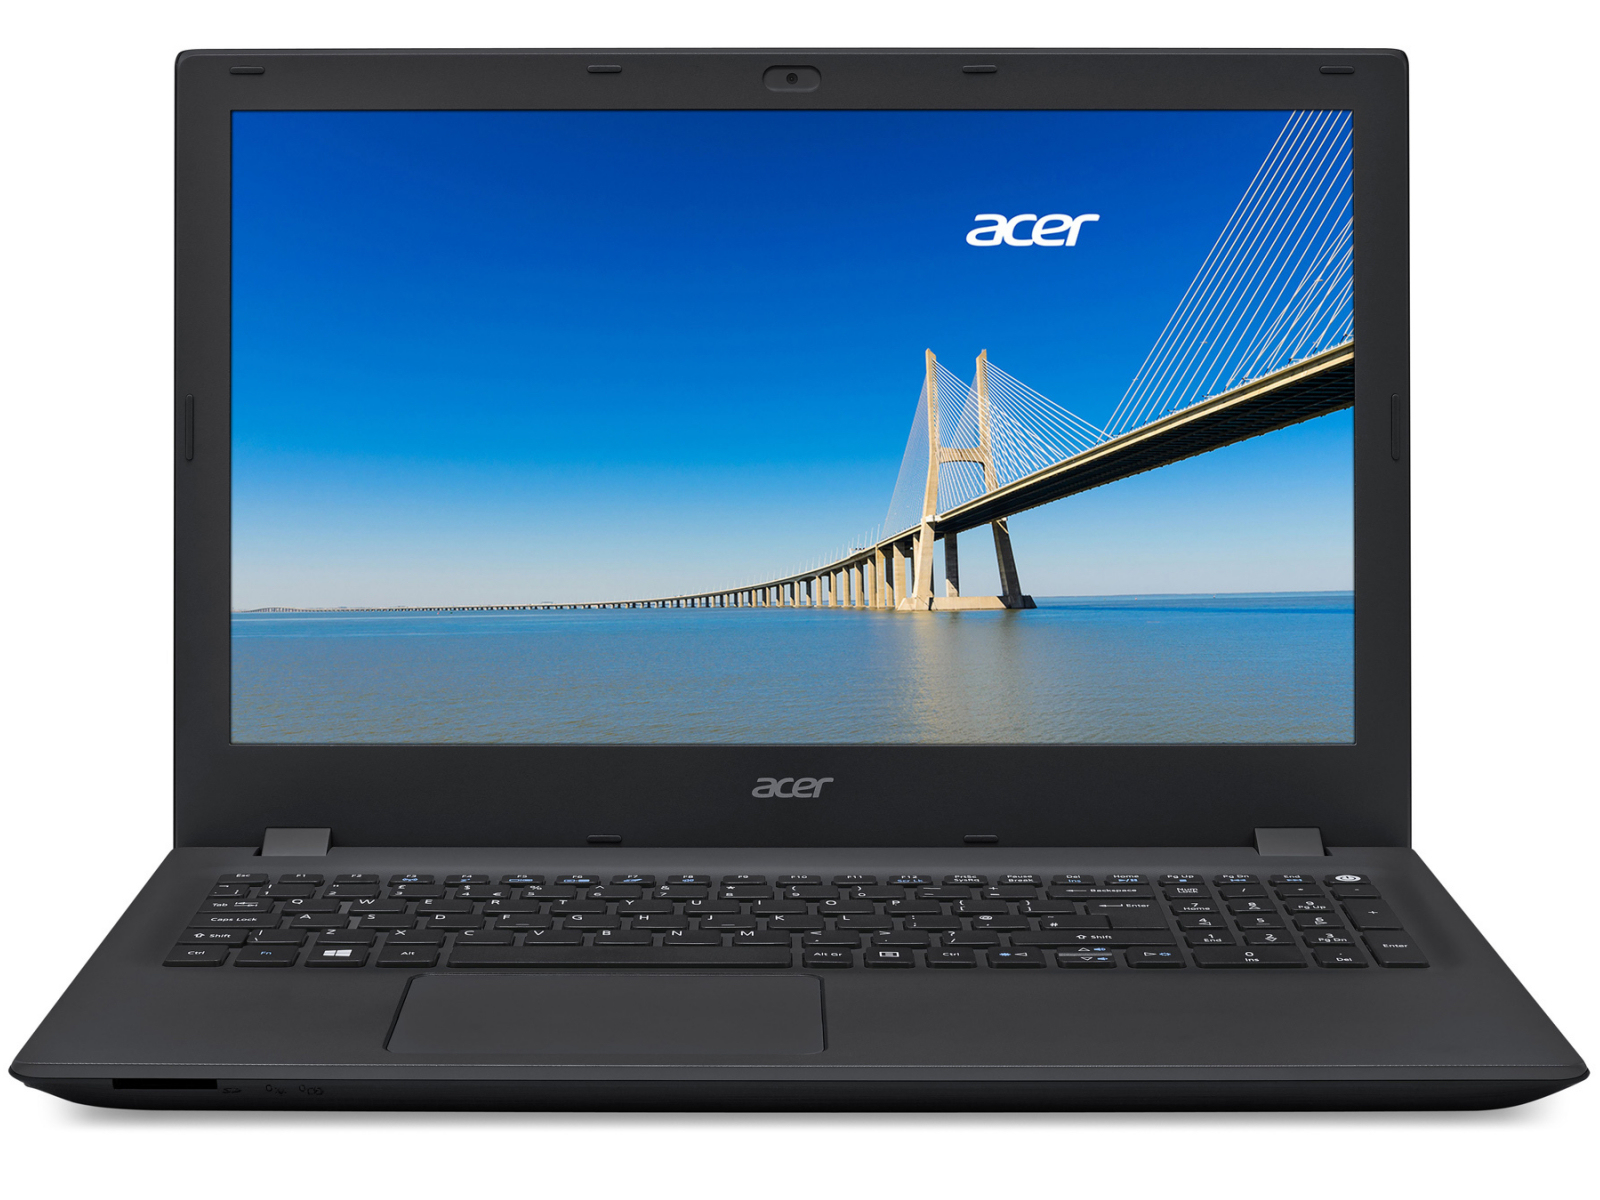 Acer Extensa 2530 Intel Graphics Drivers